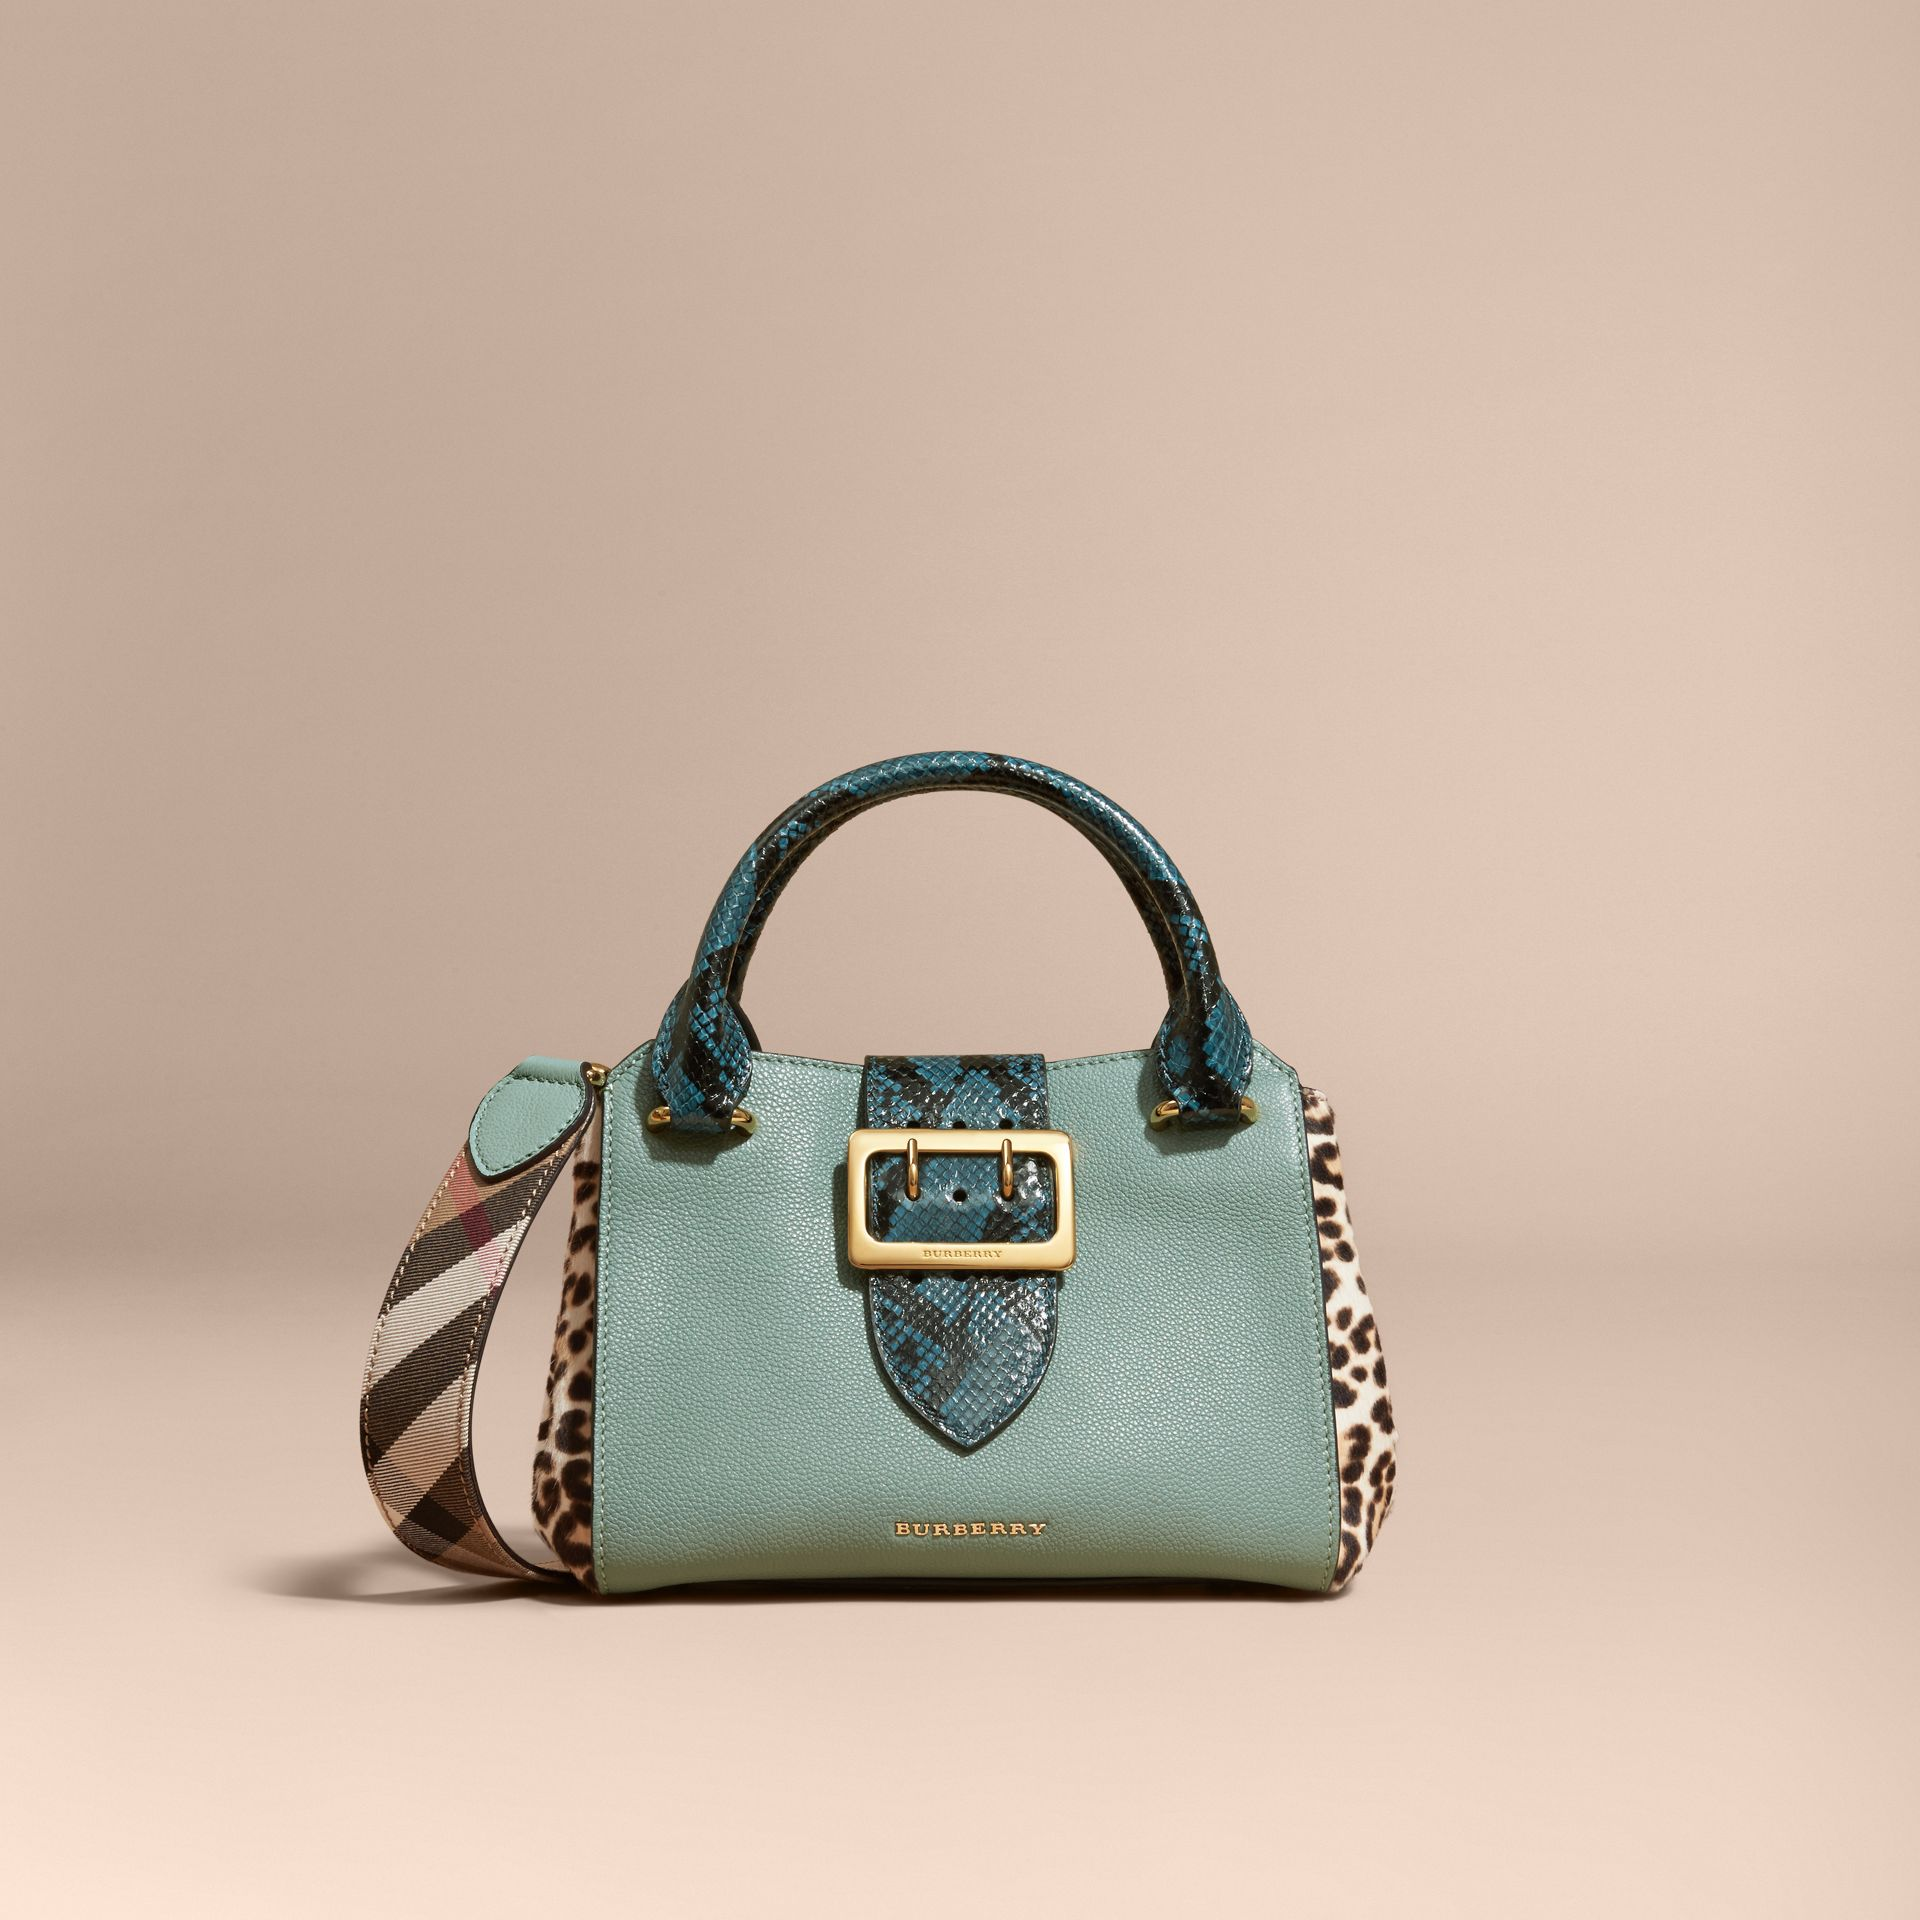 The Small Buckle Tote in Leather and  Leopard-print Calfskin in Eucalyptus Green - gallery image 9